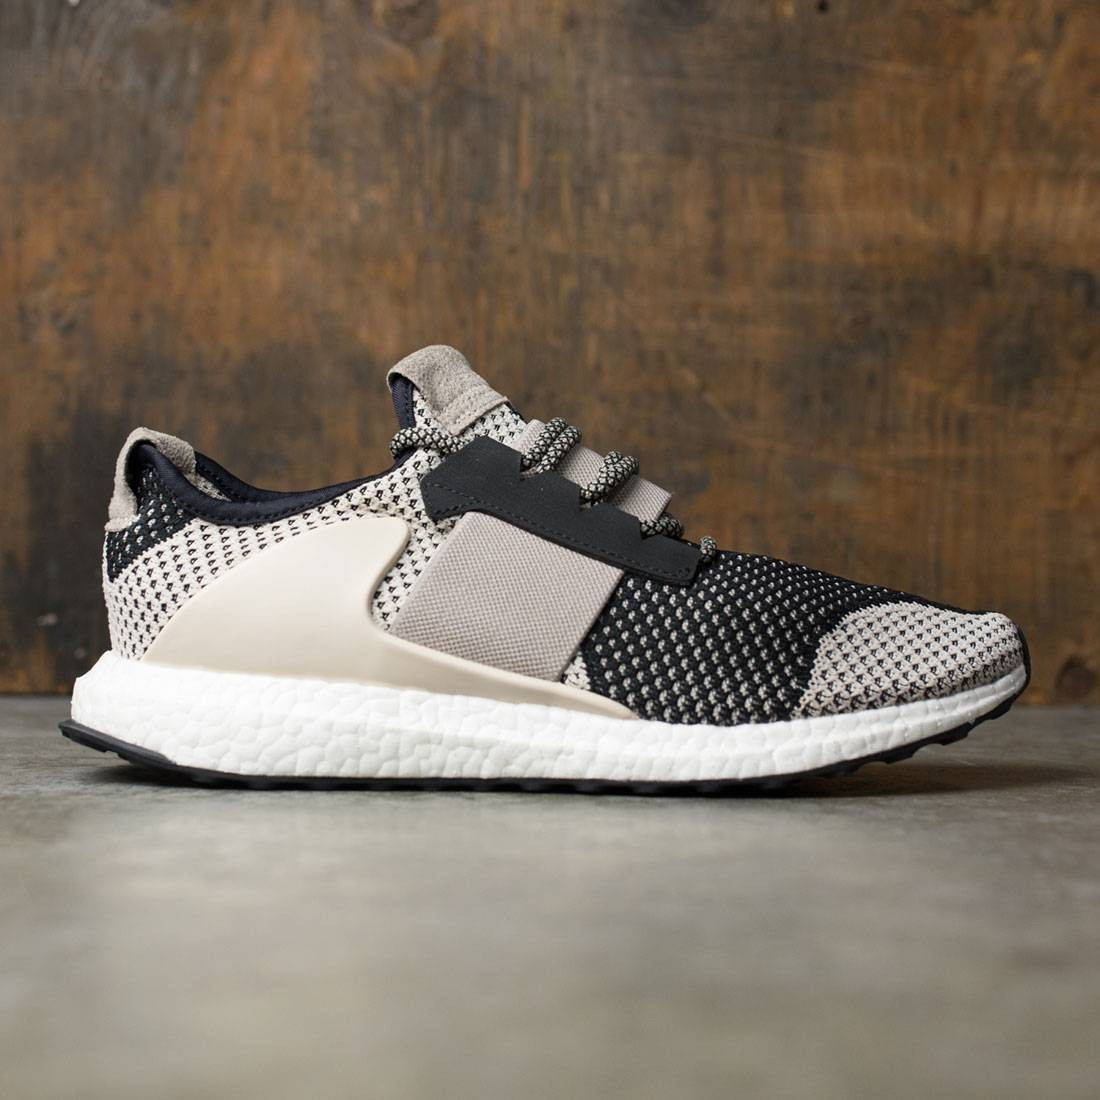 05b8a75eb5d Adidas Consortium Day One Men ADO UltraBoost ZG (brown   clear brown    light brown   black)